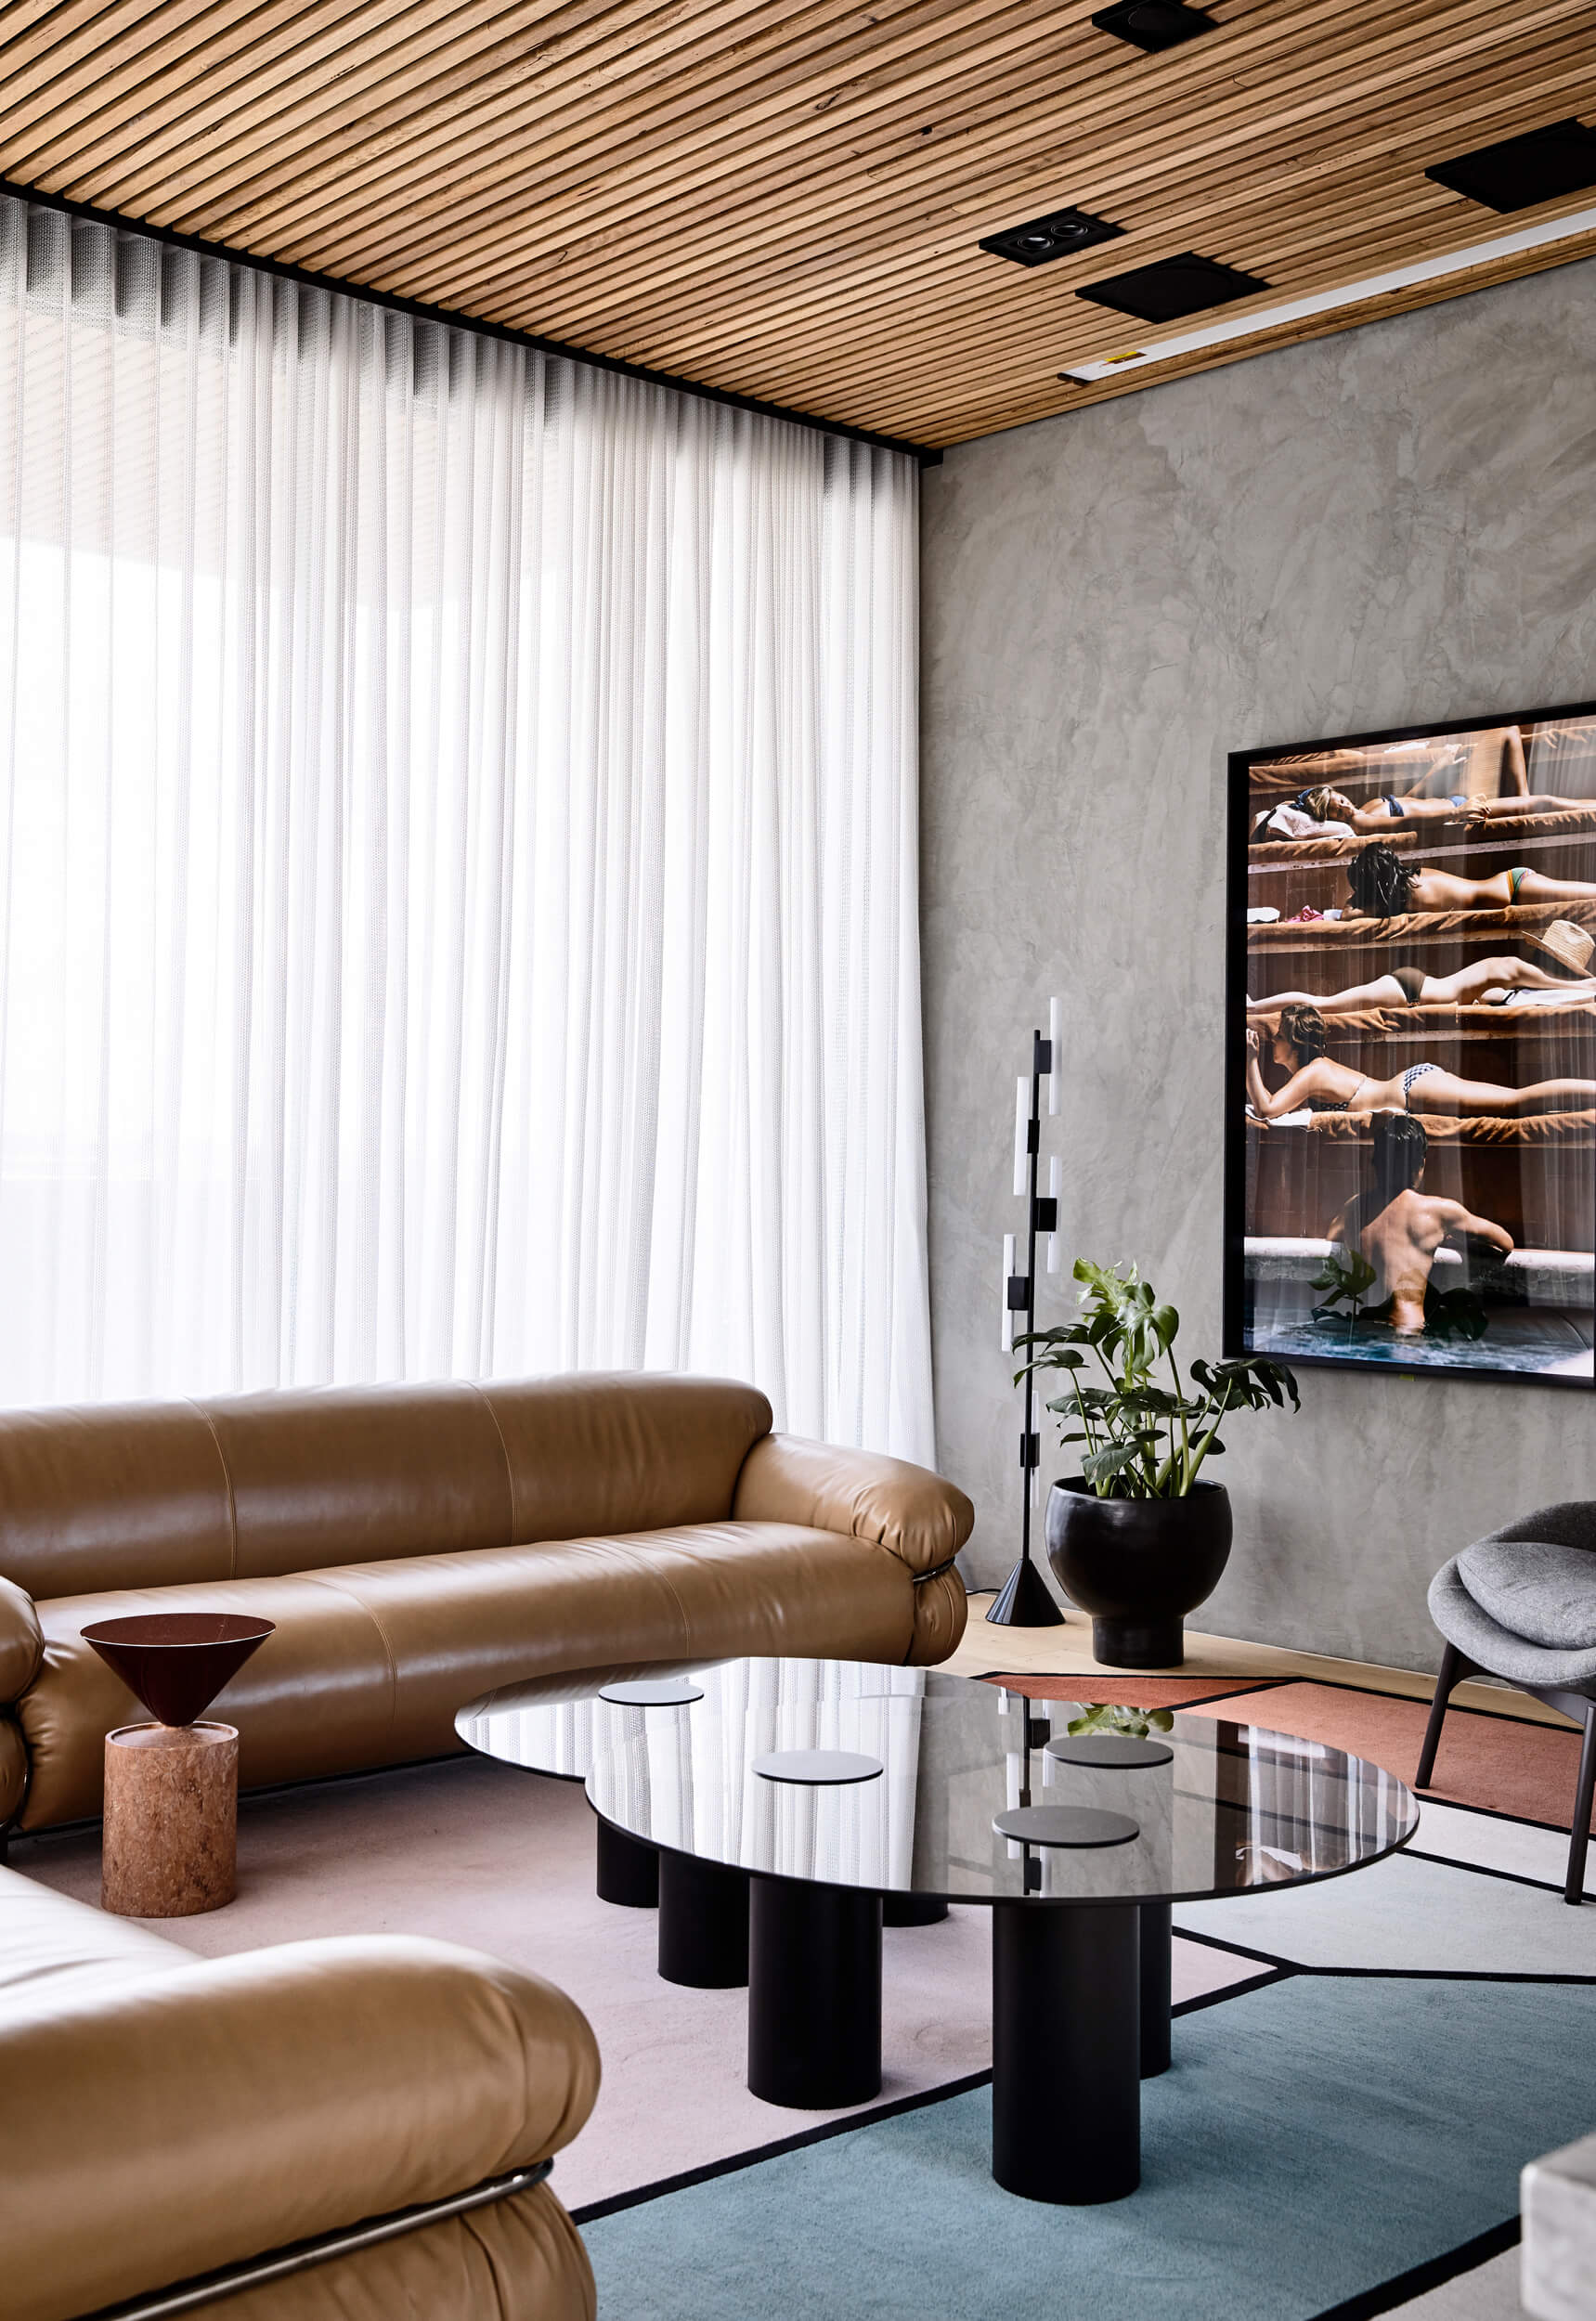 Holly Penthouse By Tom Robertson Architects Project Feature Melbourne, Australia Local Australian Design & Architectureholly R V Derek018